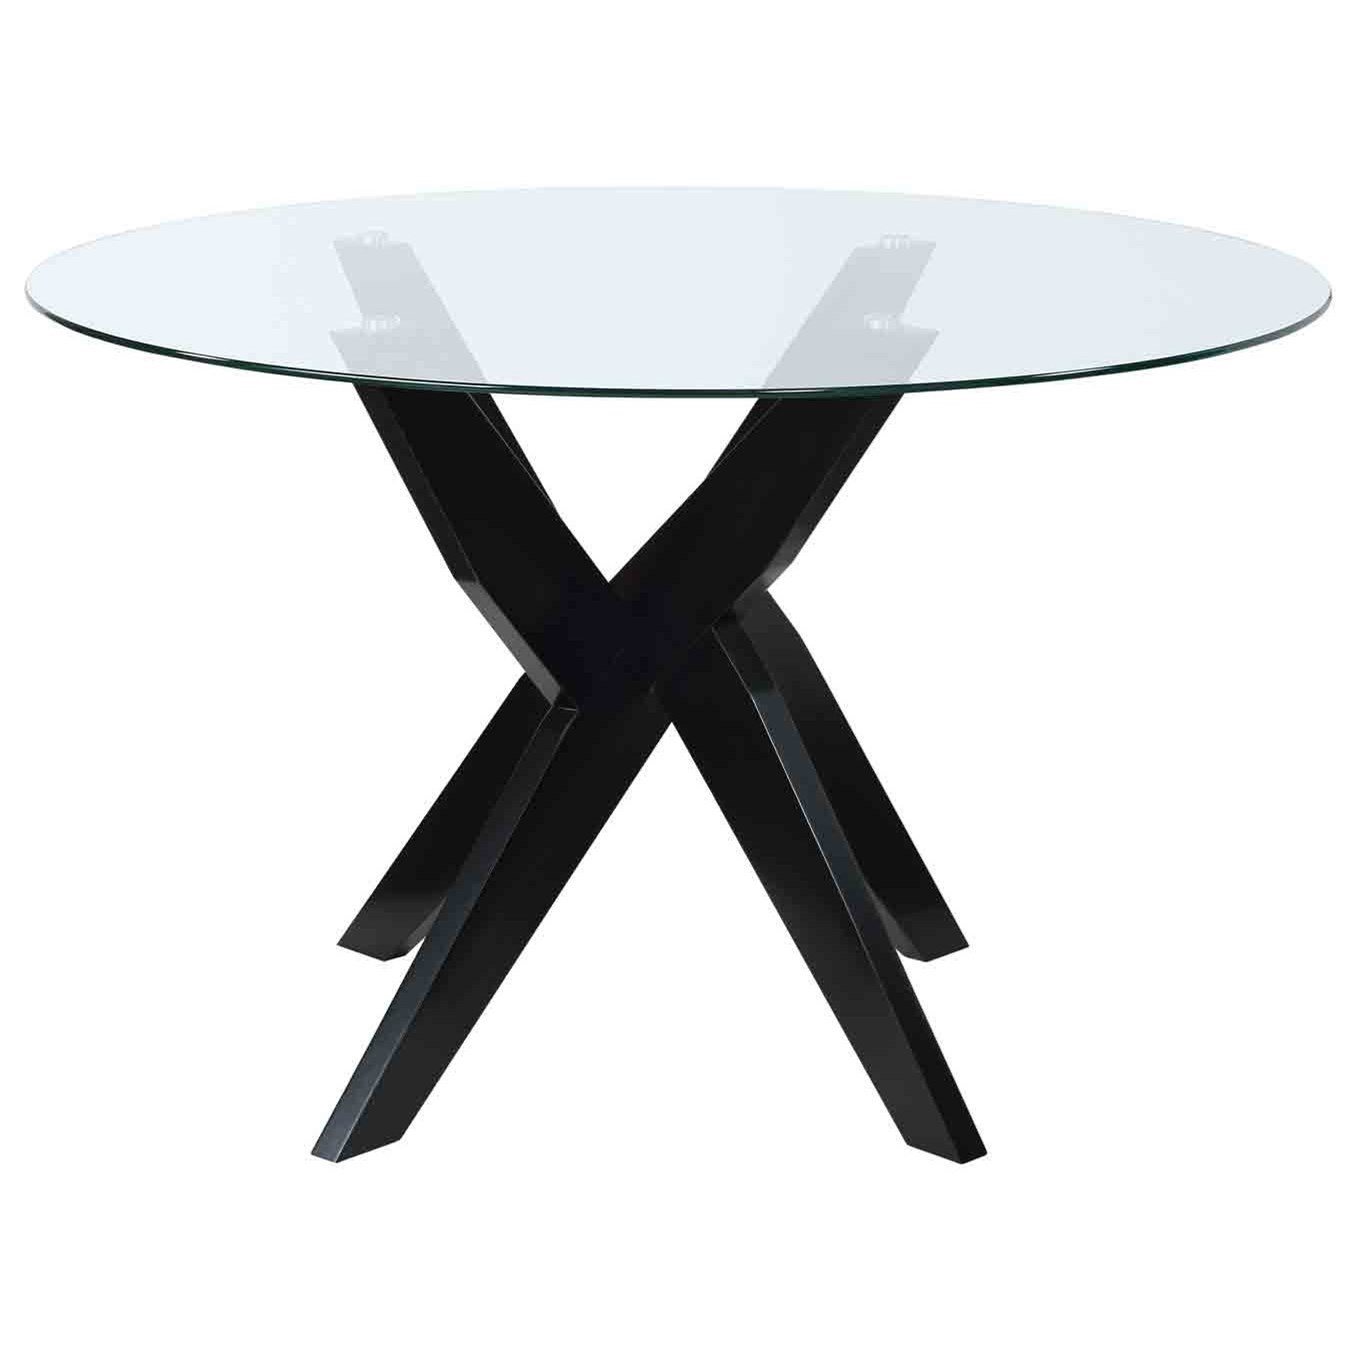 Amalie Dining Table by Steve Silver at Van Hill Furniture